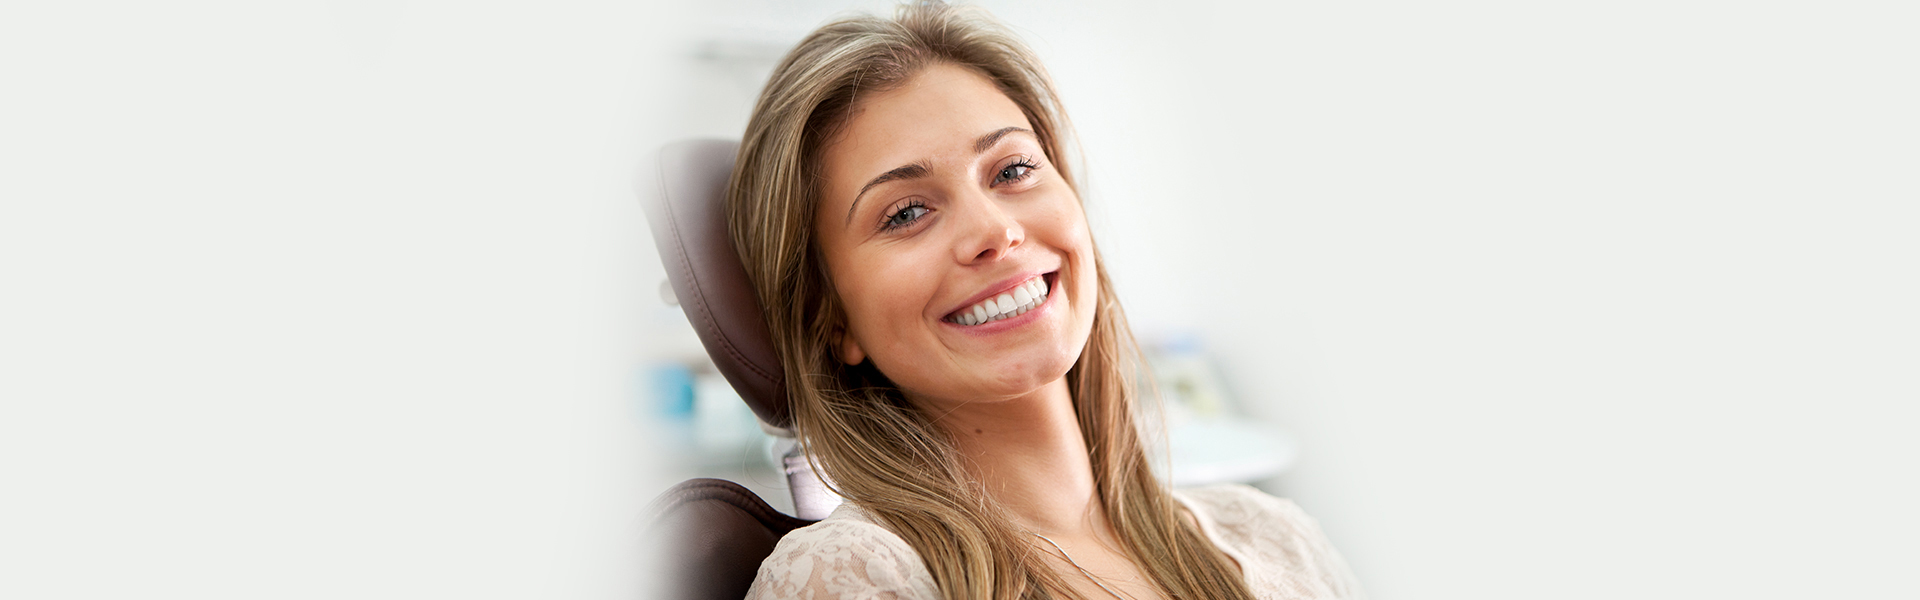 Do You Want Whiter Teeth in an Hour?